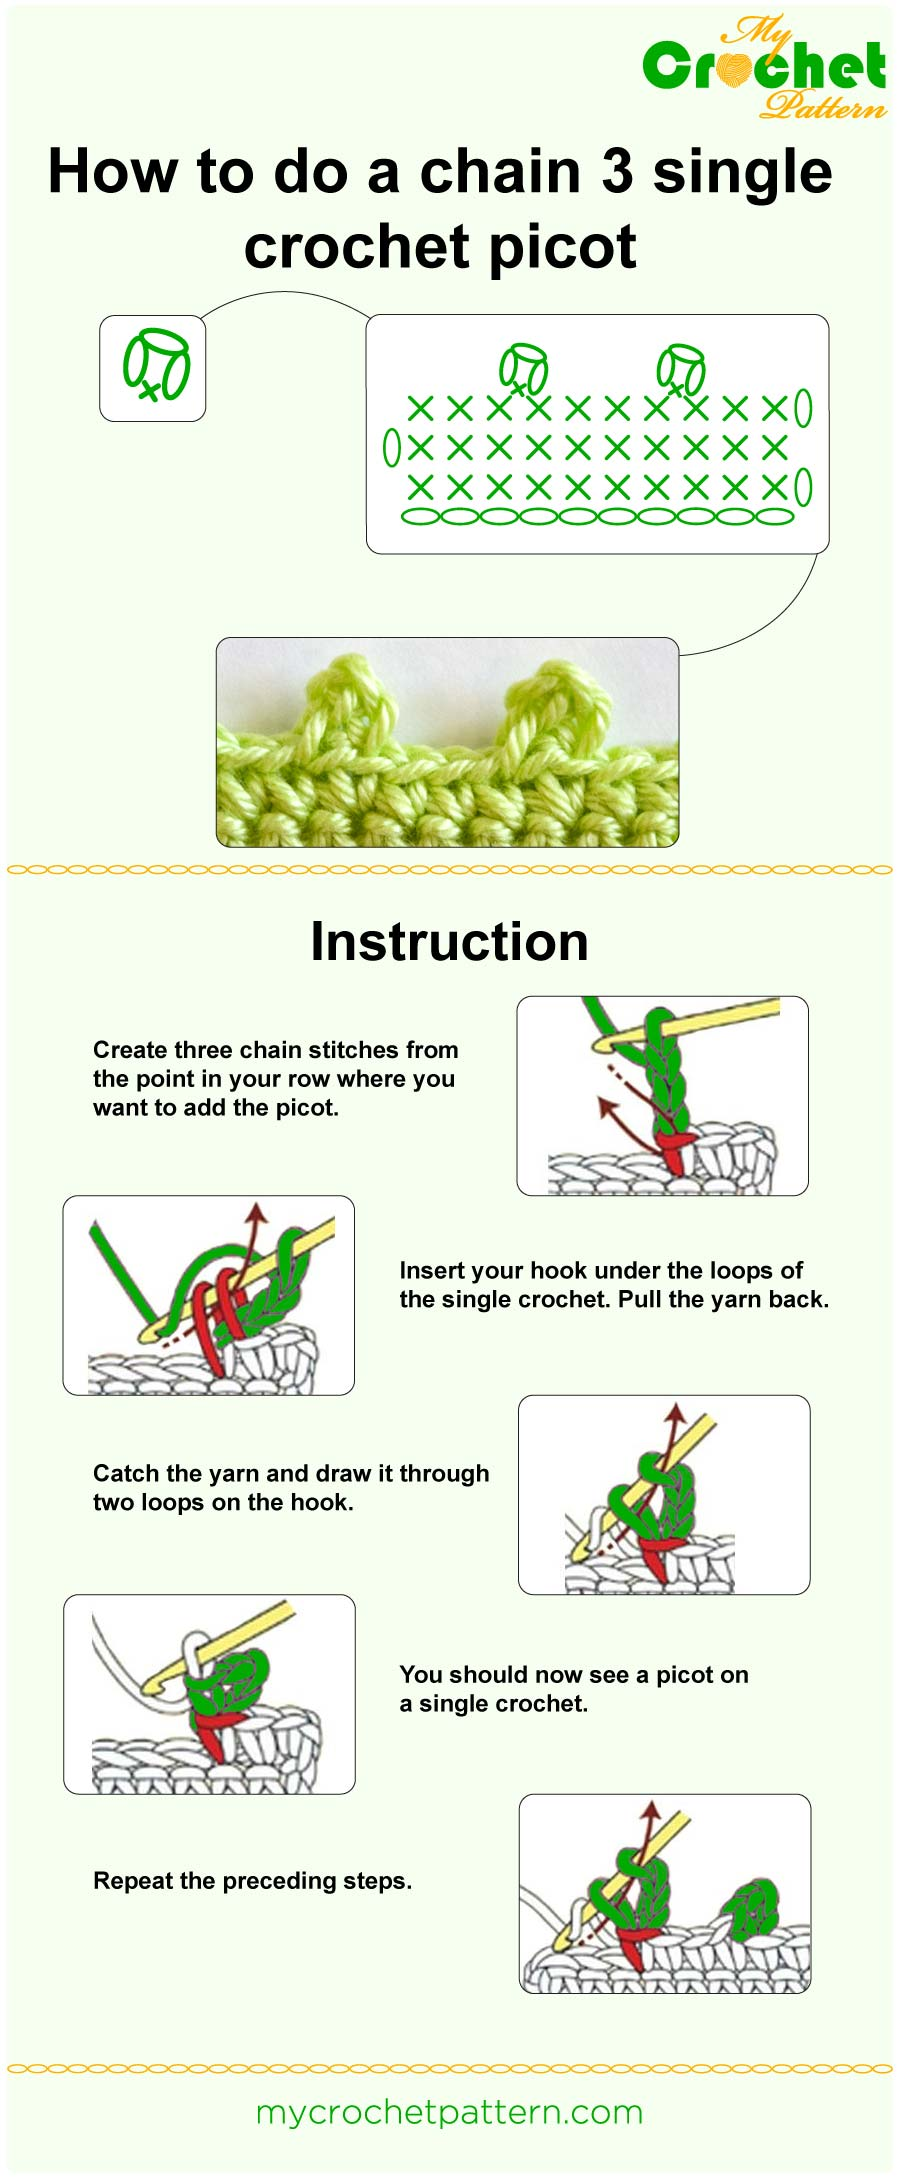 how to do a chain 3 sc picot - infographic